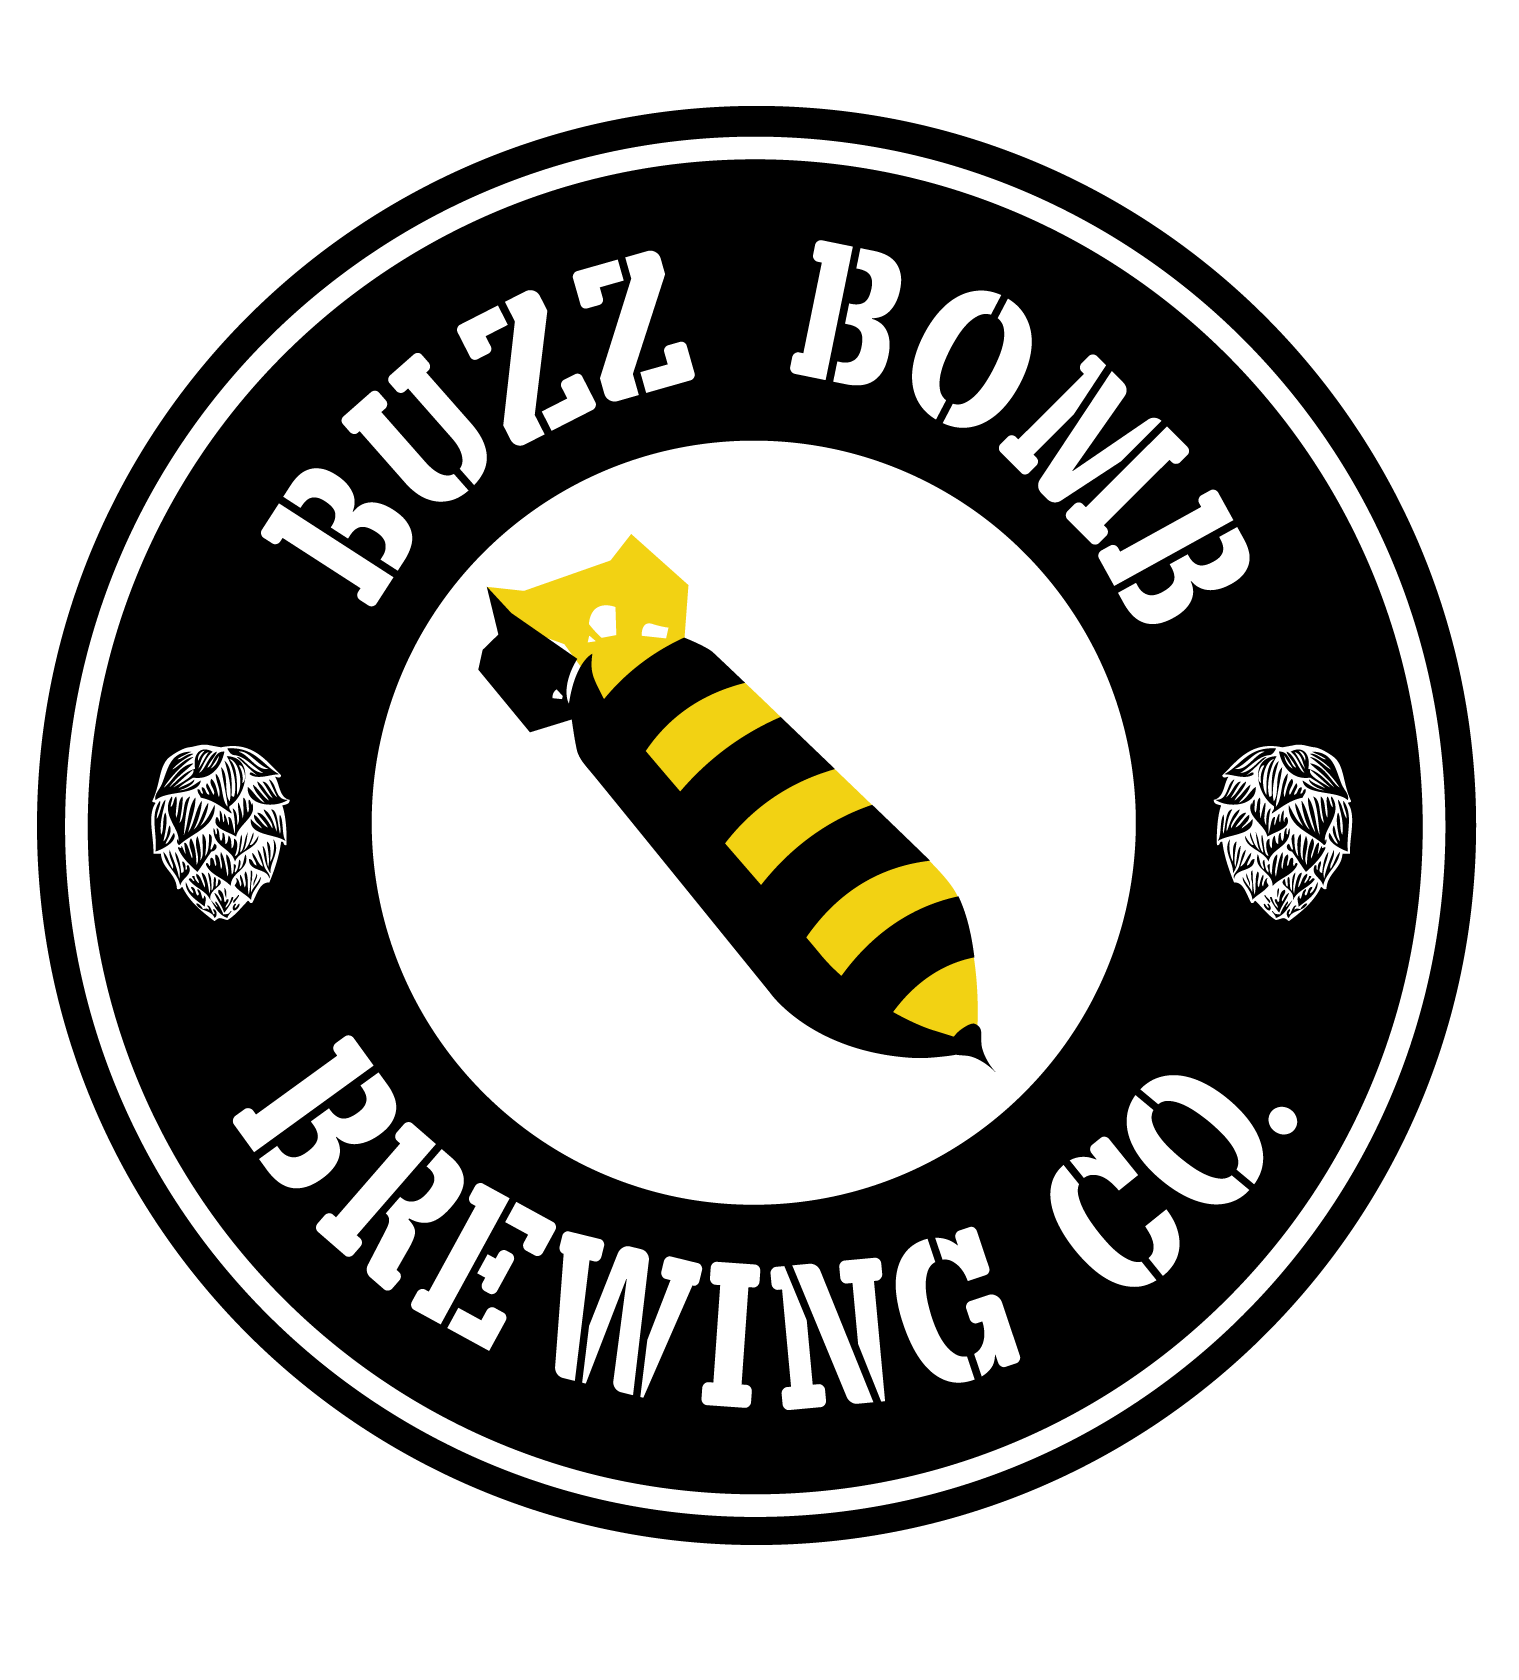 Buzz Bomb Brewing Co